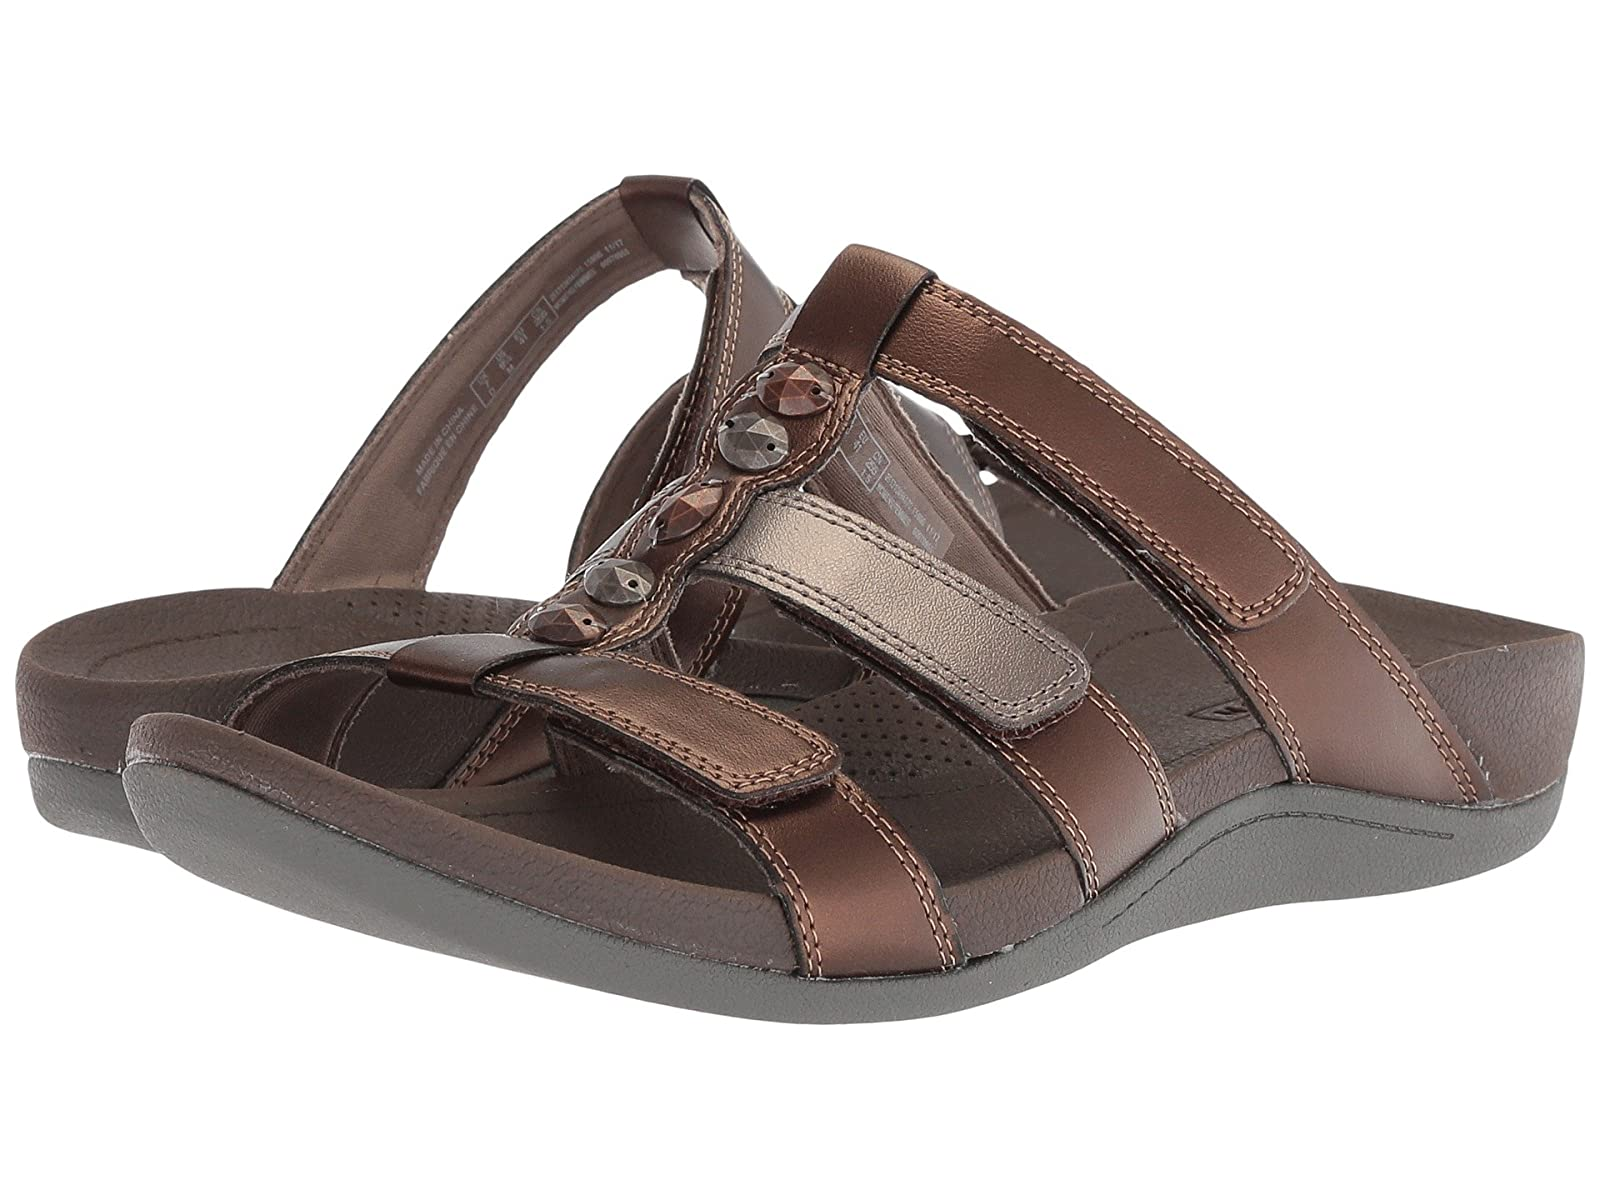 Clarks Pical CusickCheap and distinctive eye-catching shoes